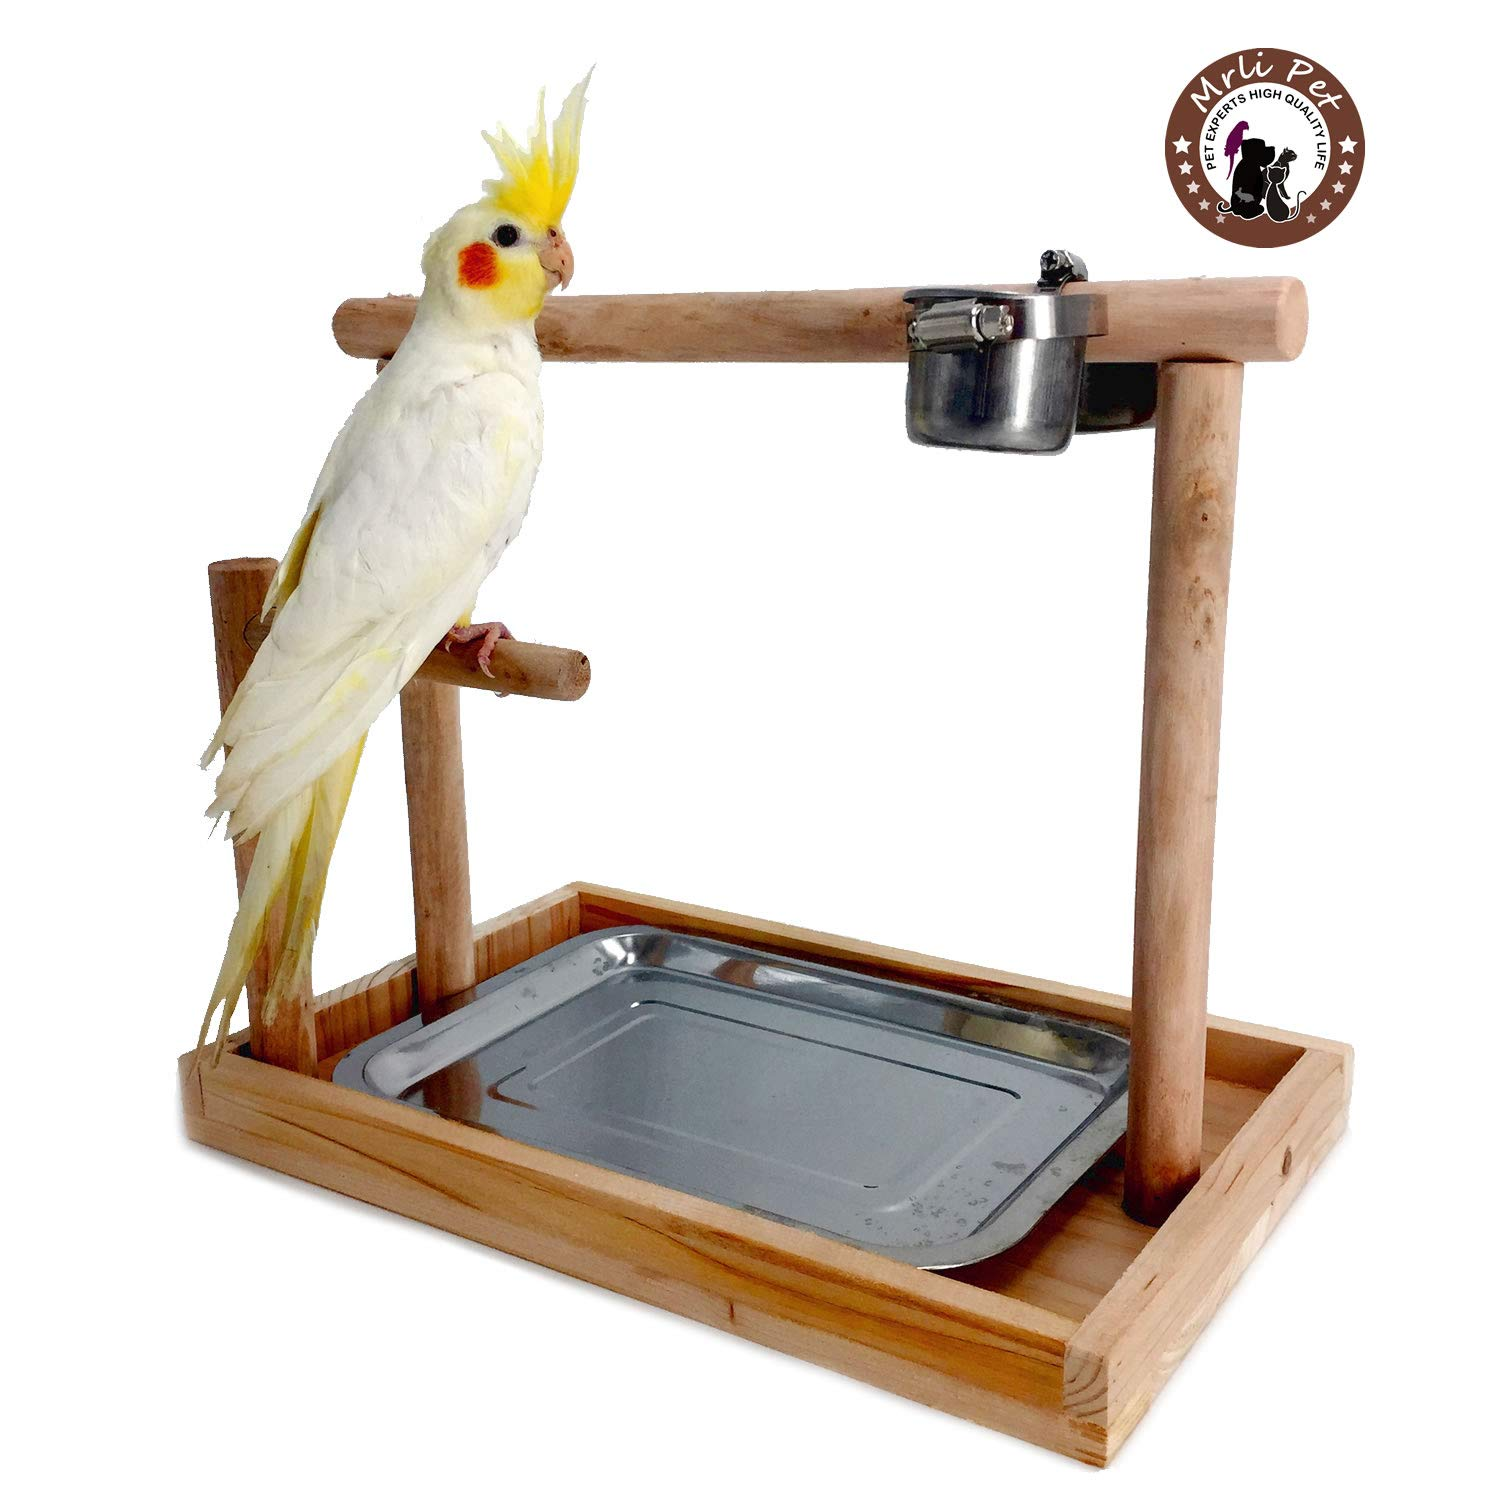 Mrli Pet Parrots Playstand Bird Playground Perch Gym Training Stand Playpen for Eclectus Cockatoo Parakeet Conure Cockatiel Cage Accessories (Include a Tray) by Mrli Pet